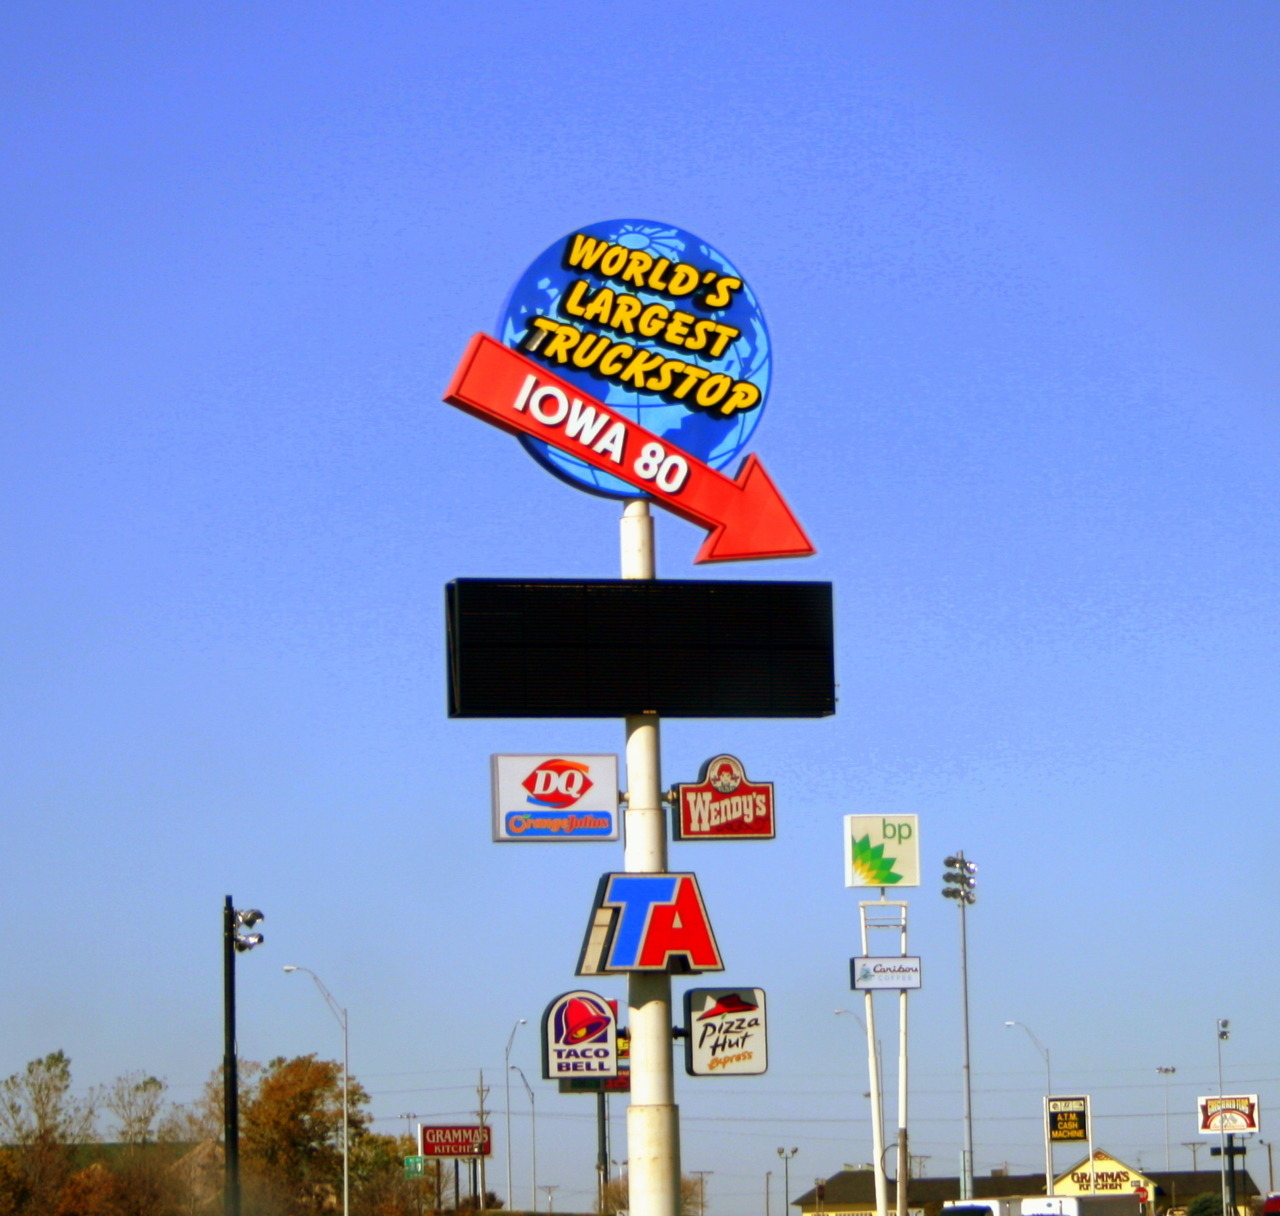 Largest truck stop in the world, Iowa, USA. October 2011